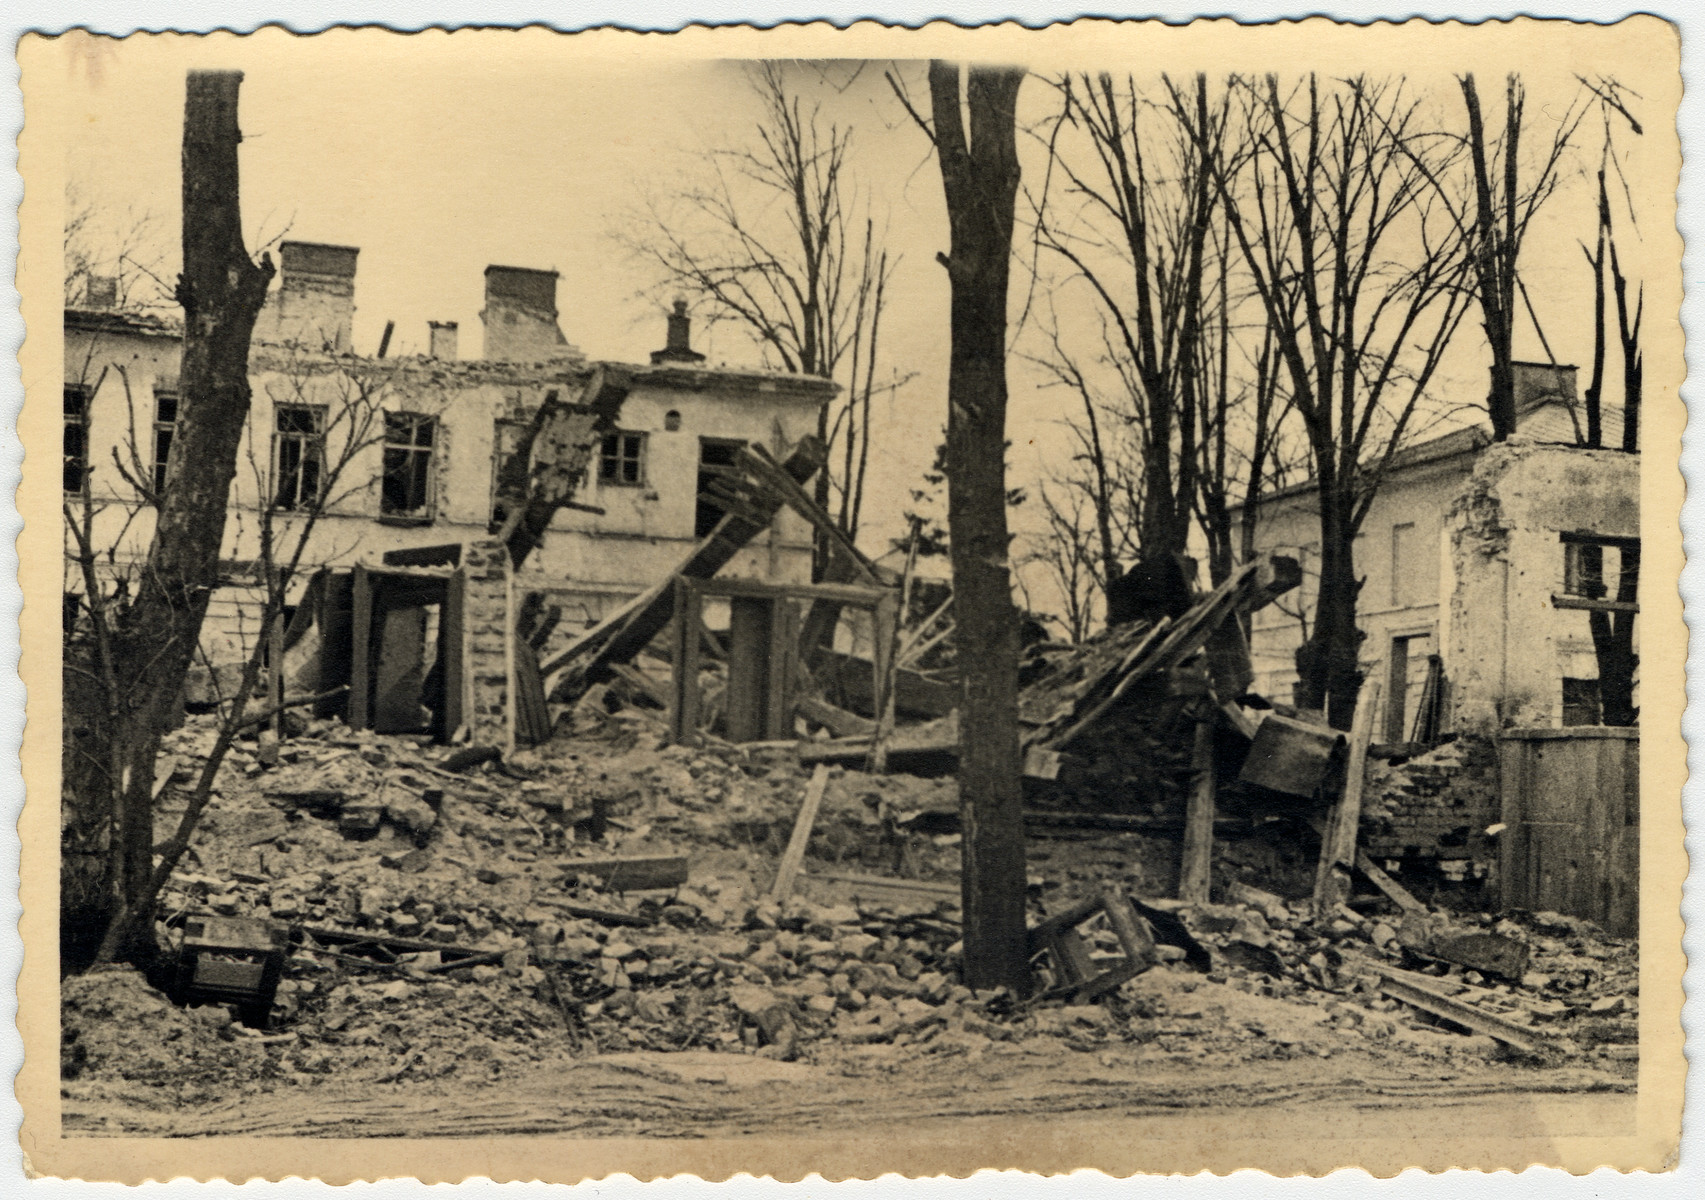 An unidentified town lays in ruins after the Nazi invasion of the USSR.